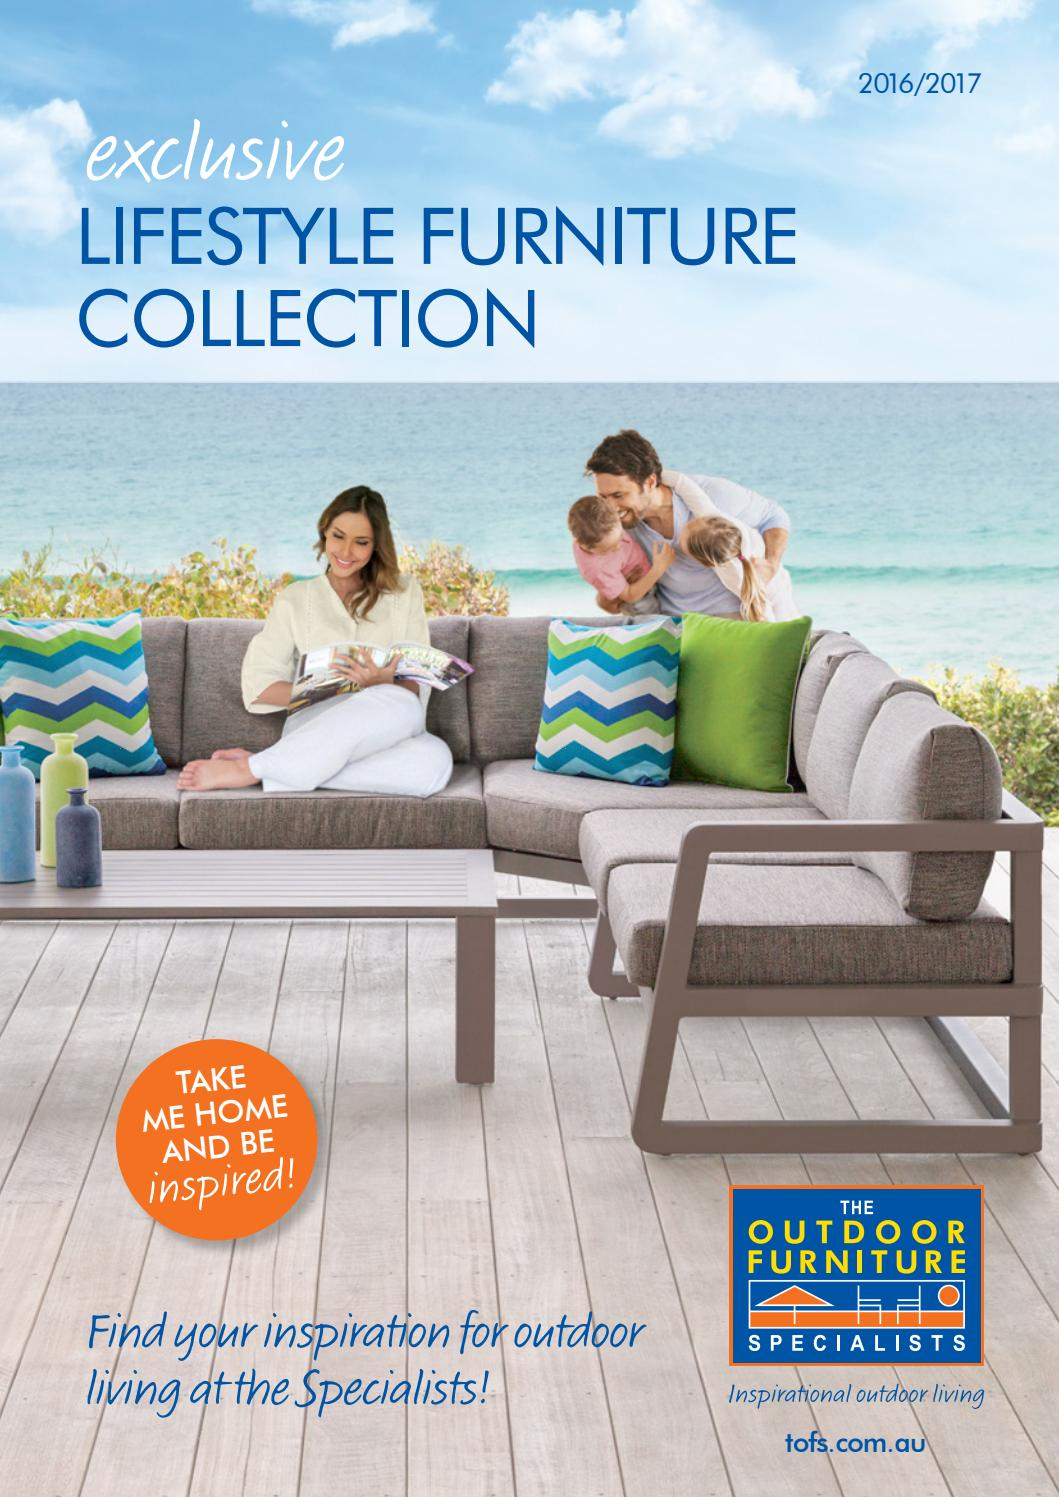 Marvelous The Outdoor Furniture Specialists Exclusive Lifestyle Furniture Collection  2016/2017 By TOFS: The Outdoor Furniture Specialists   Issuu Part 2